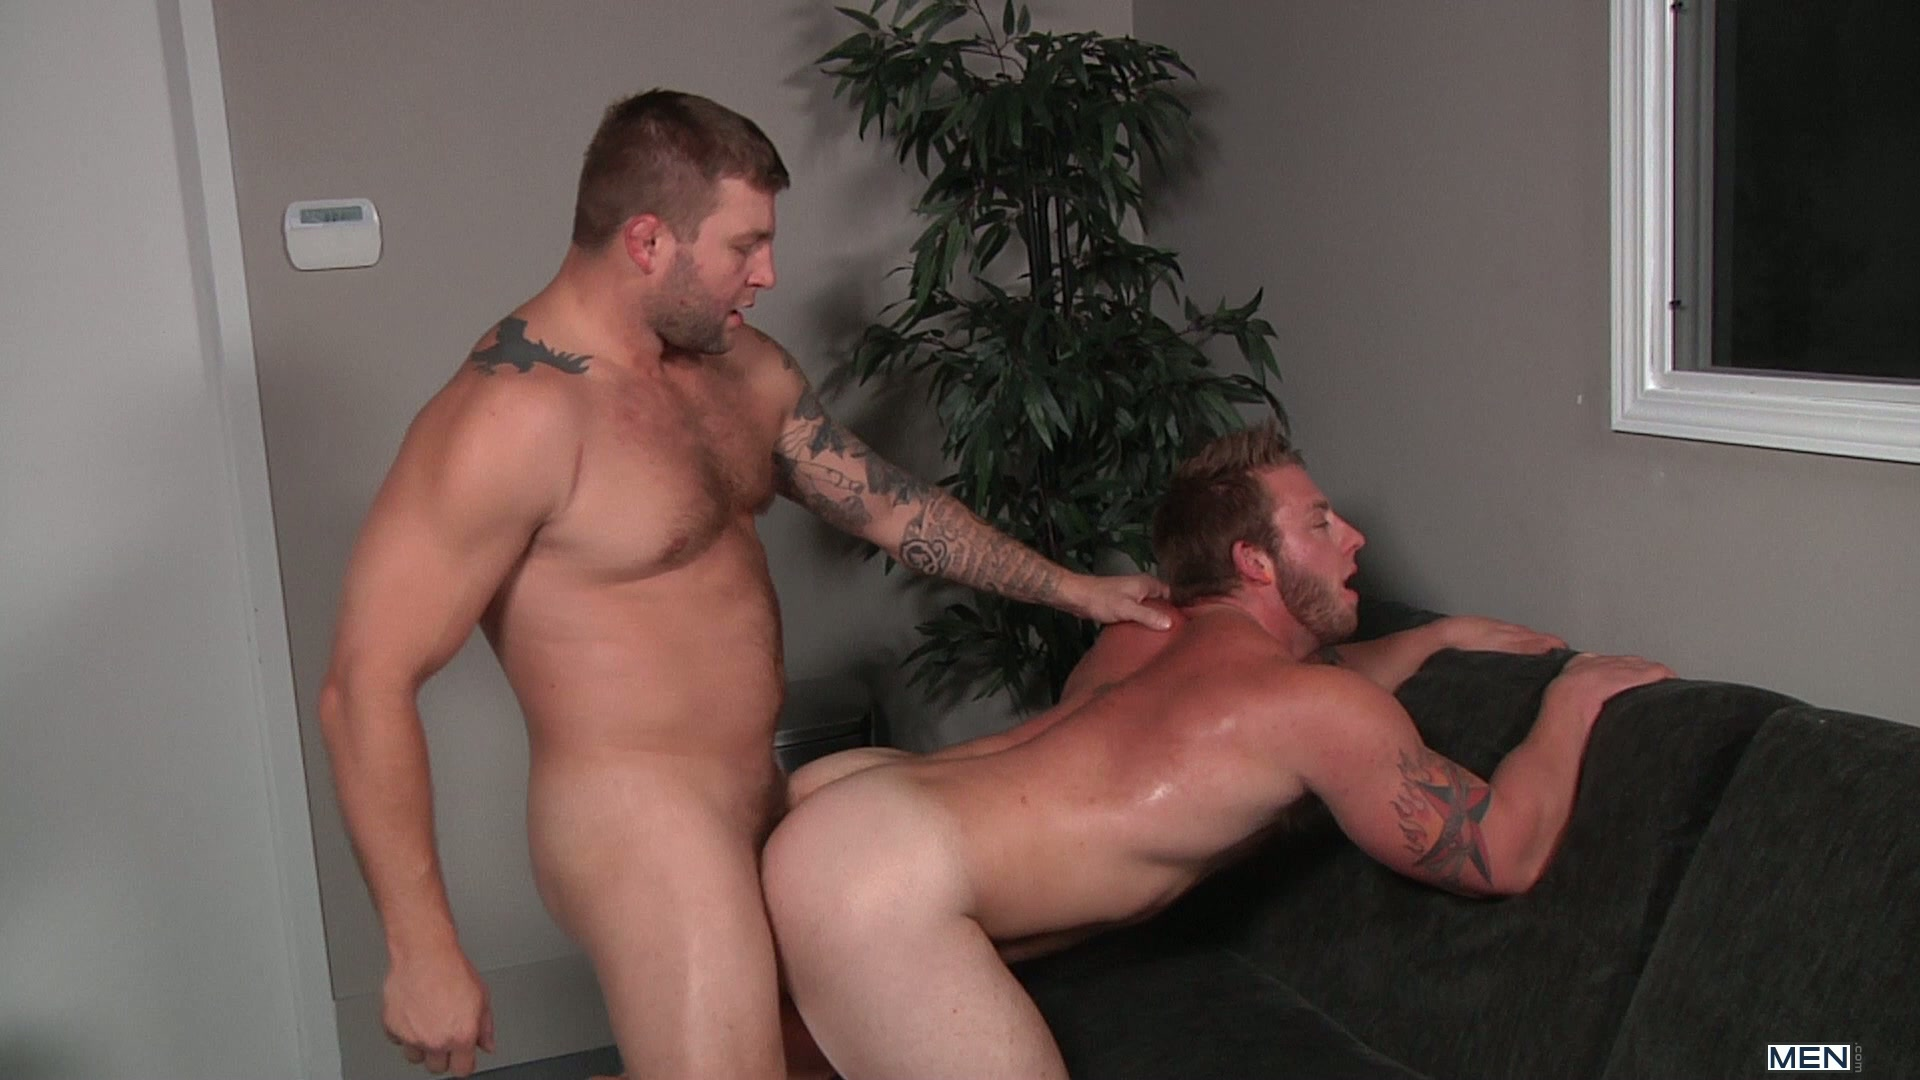 Aaron Porno colby jansen & aaron bruiser - gay - scrum part 2: word is out